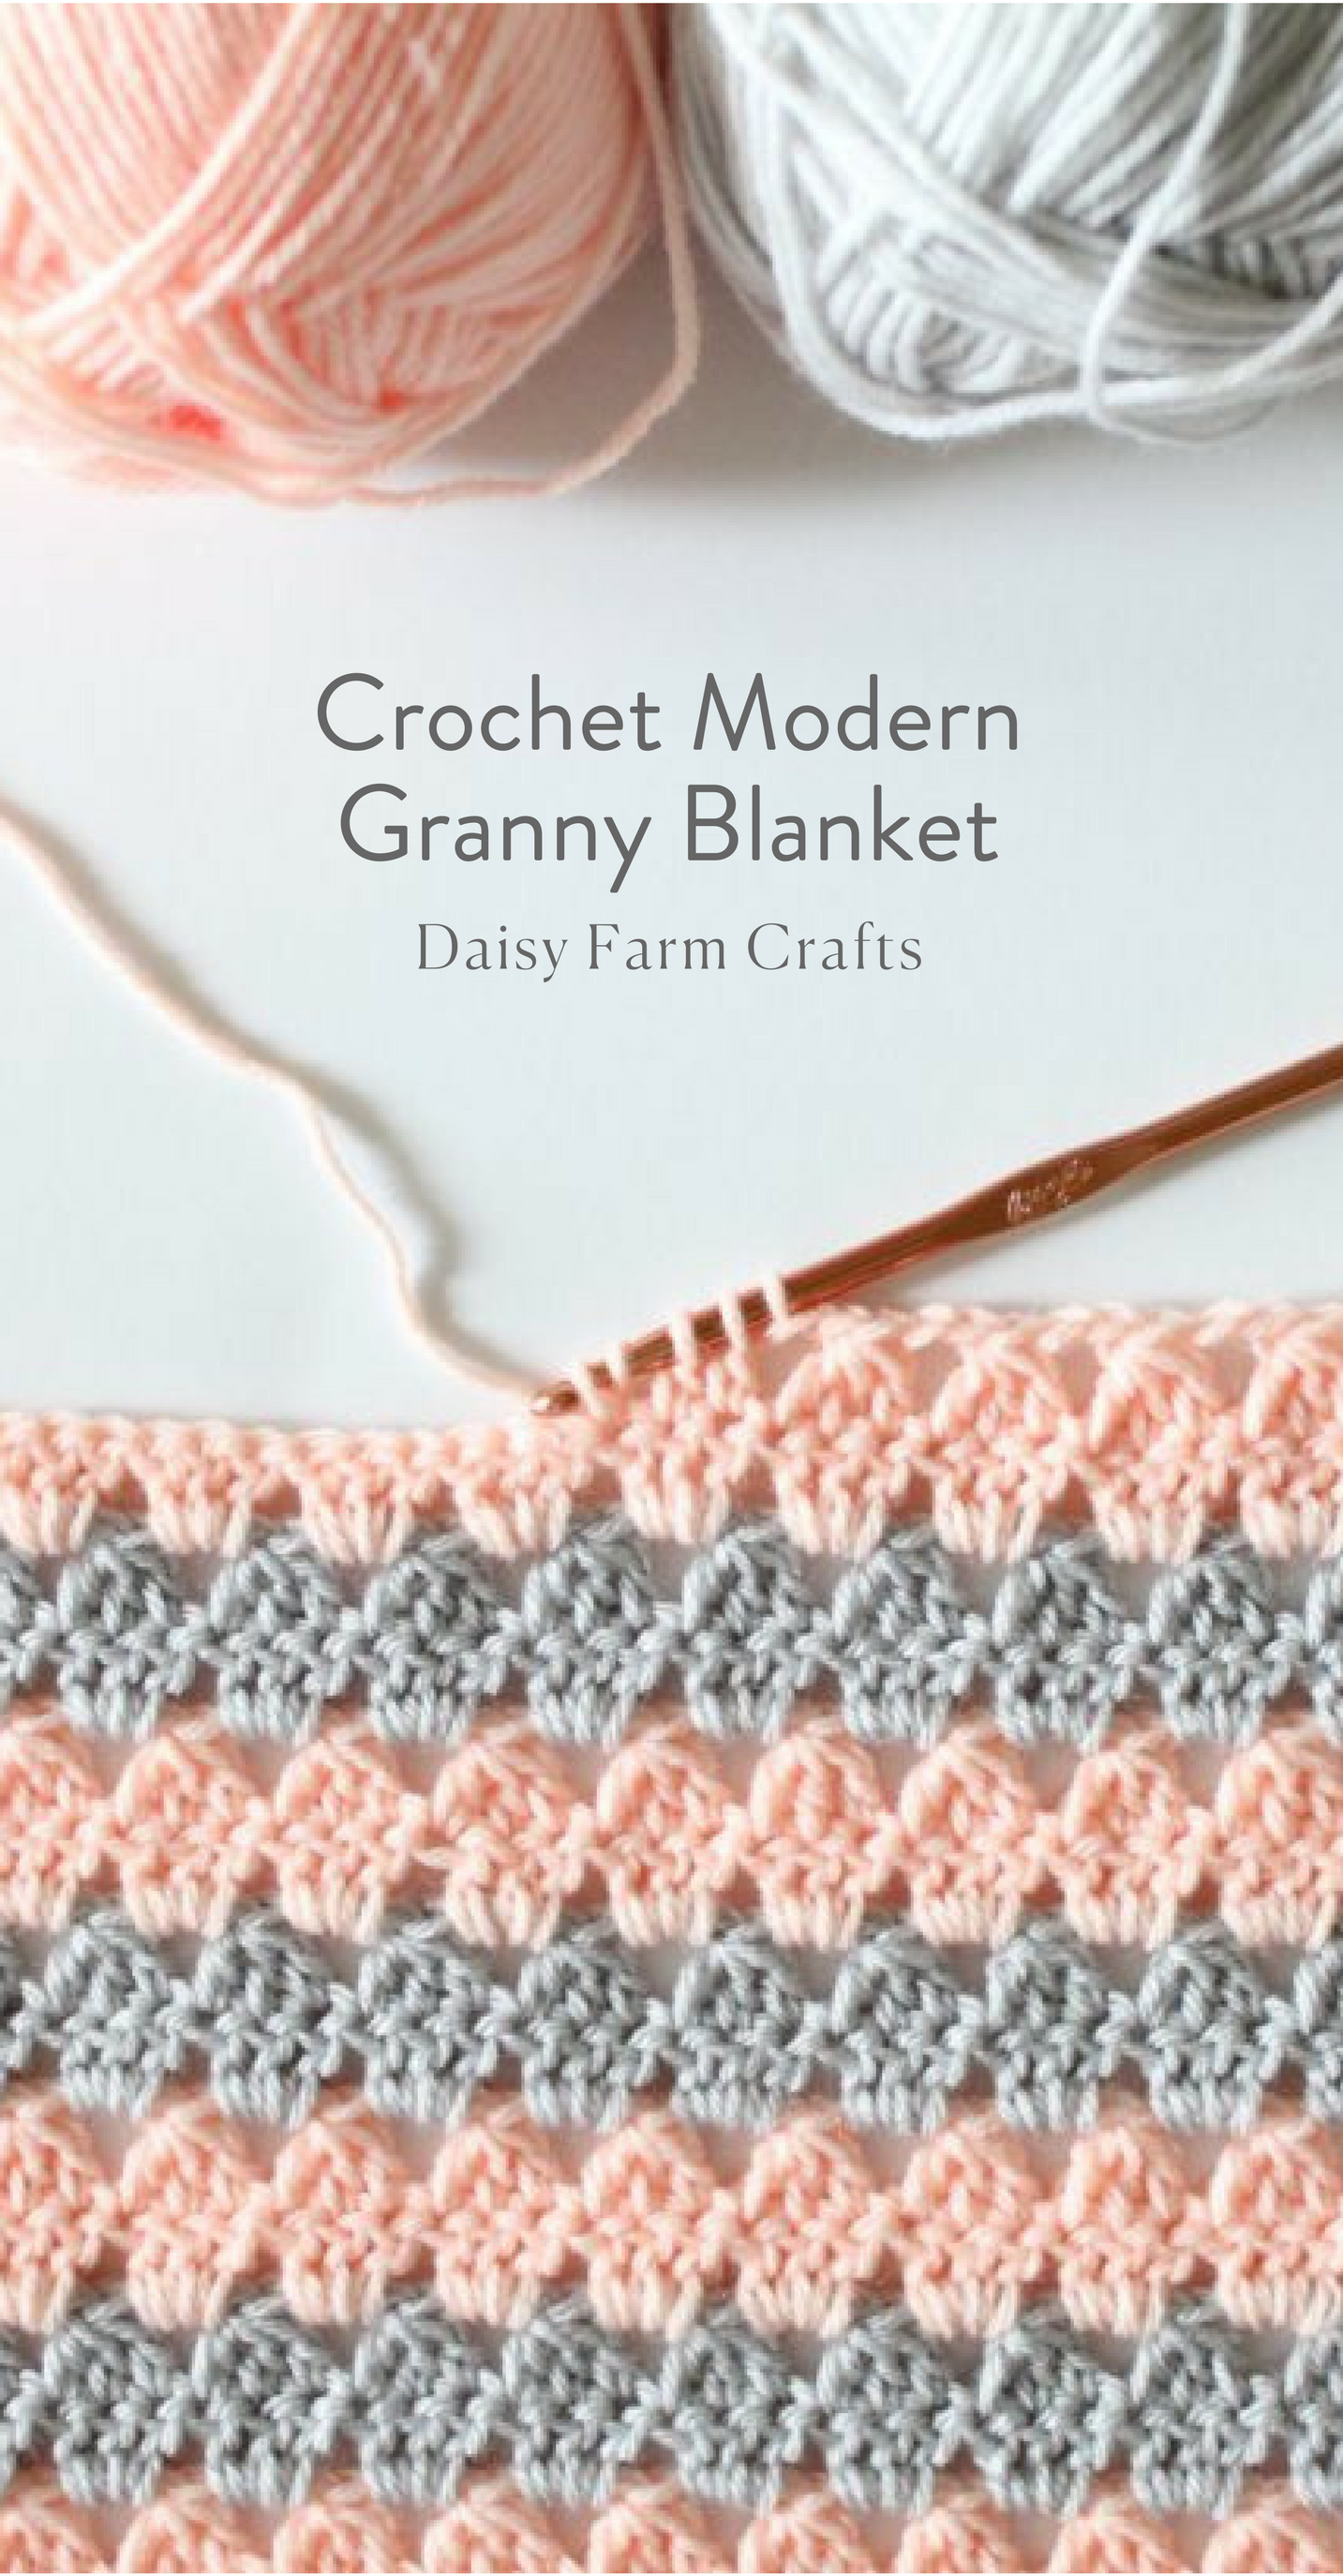 Free Pattern - Crochet Modern Granny Blanket | Ideas | Pinterest ...